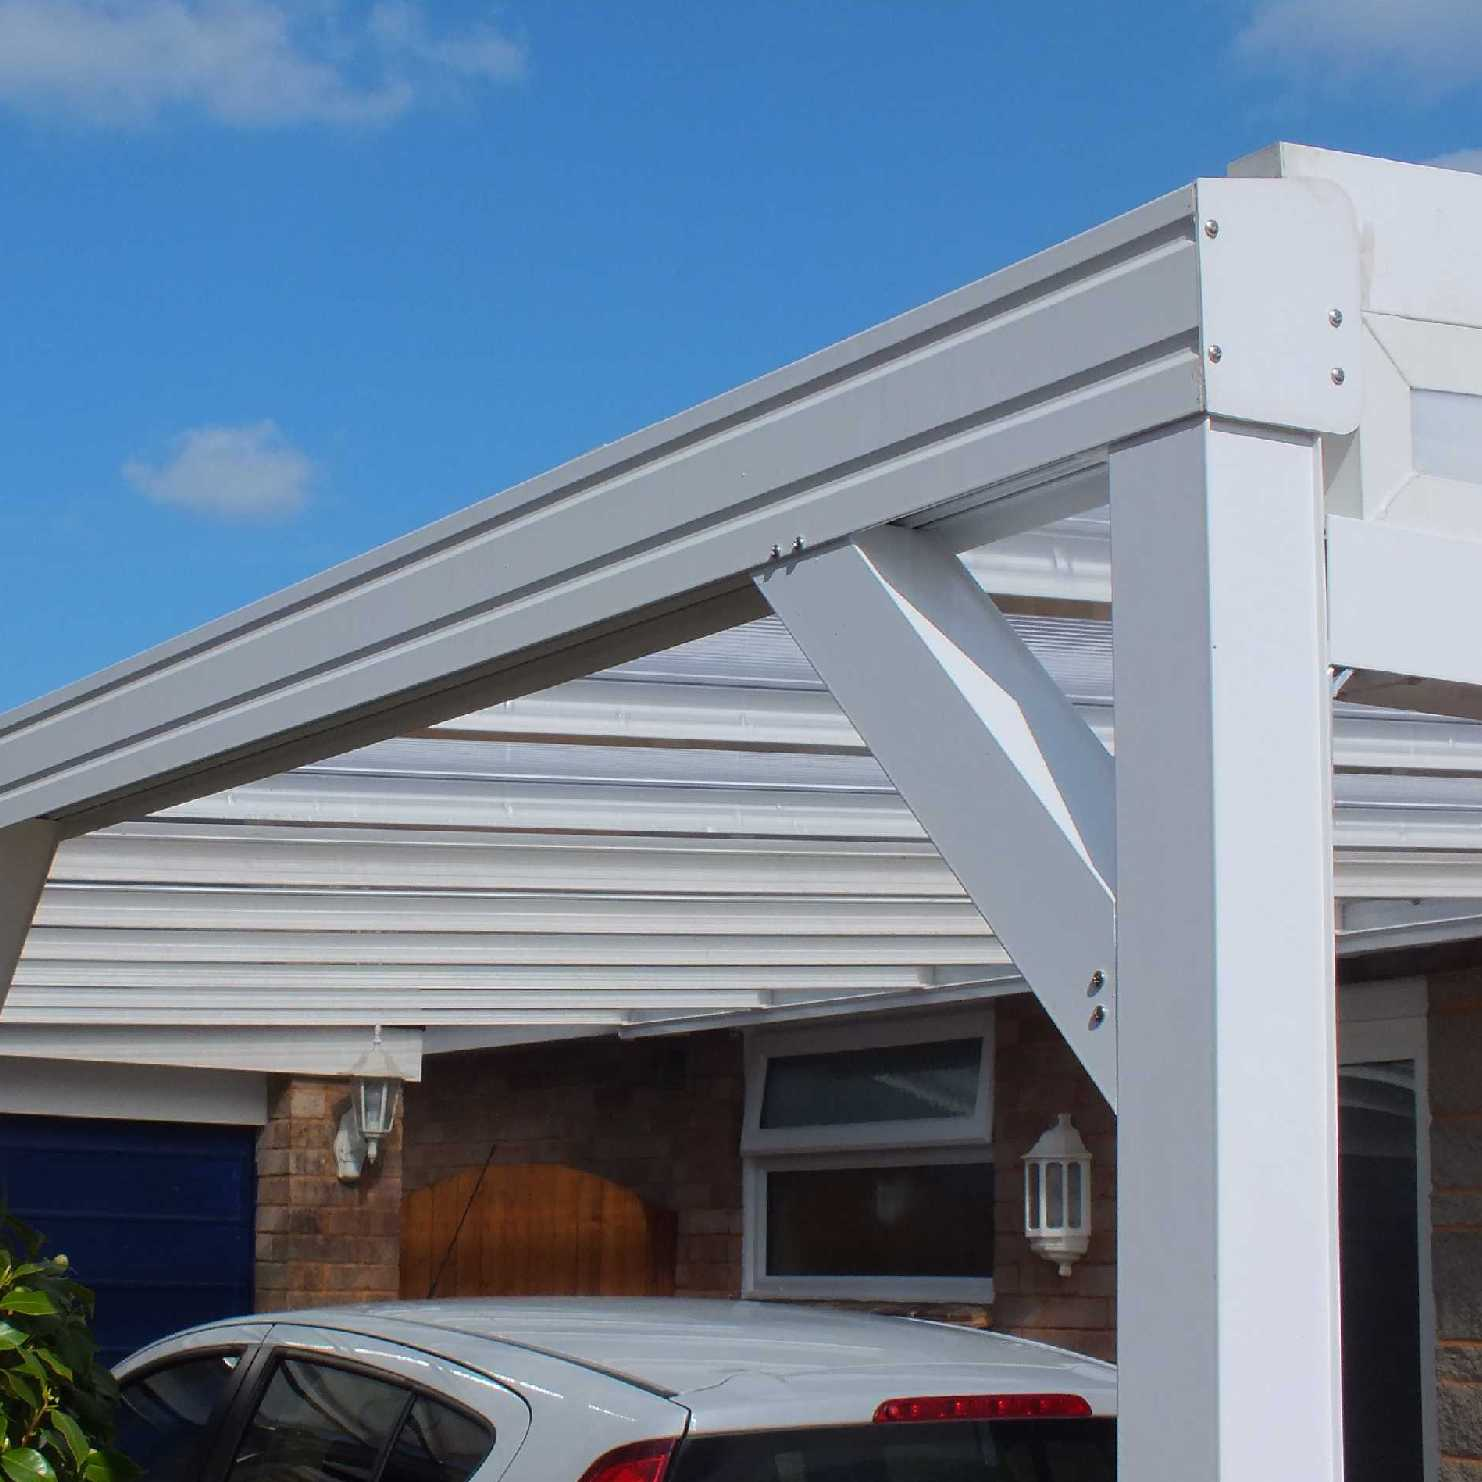 Buy Omega Smart White Lean-To Canopy with 16mm Polycarbonate Glazing - 12.0m (W) x 3.0m (P), (5) Supporting Posts online today